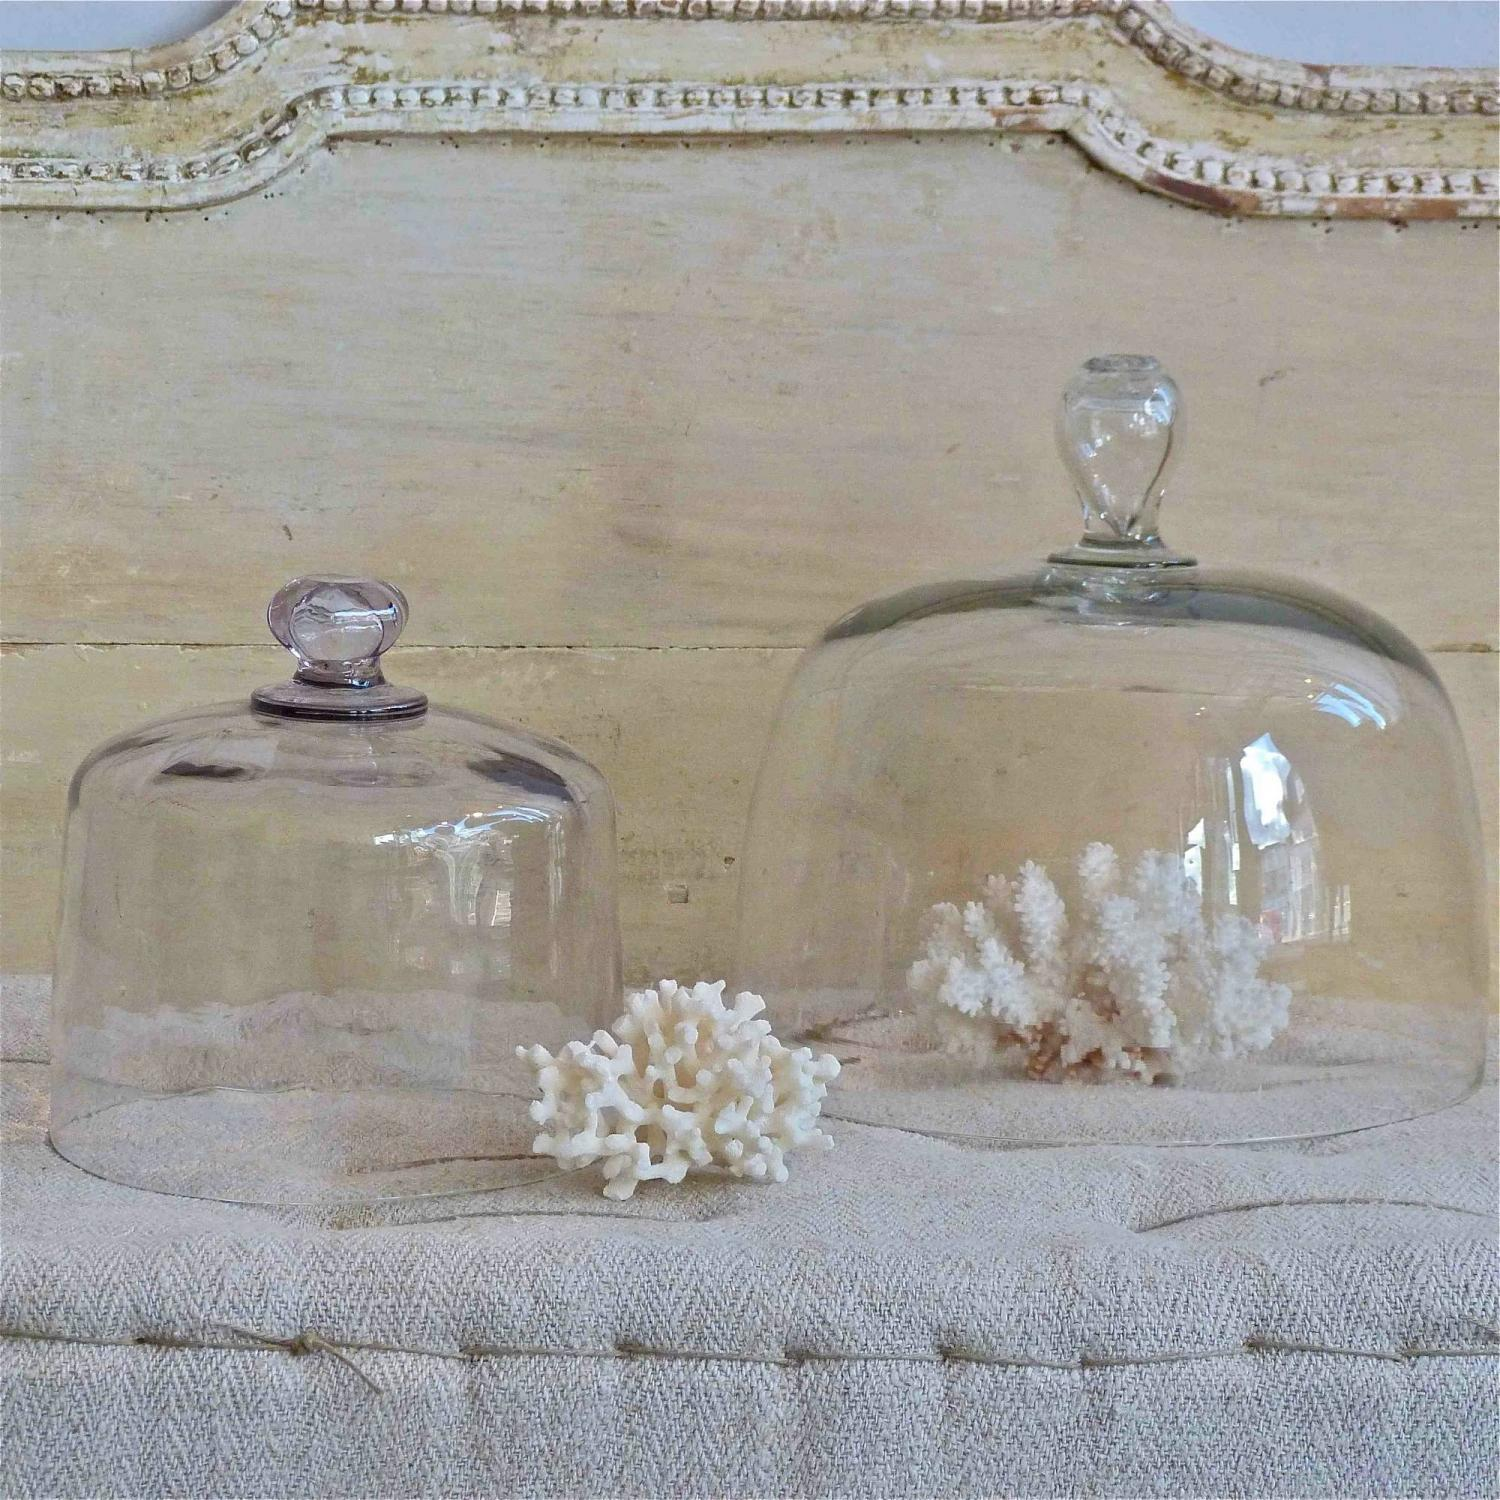 TWO 19TH CENTURY VICTORIAN GLASS CLOCHES